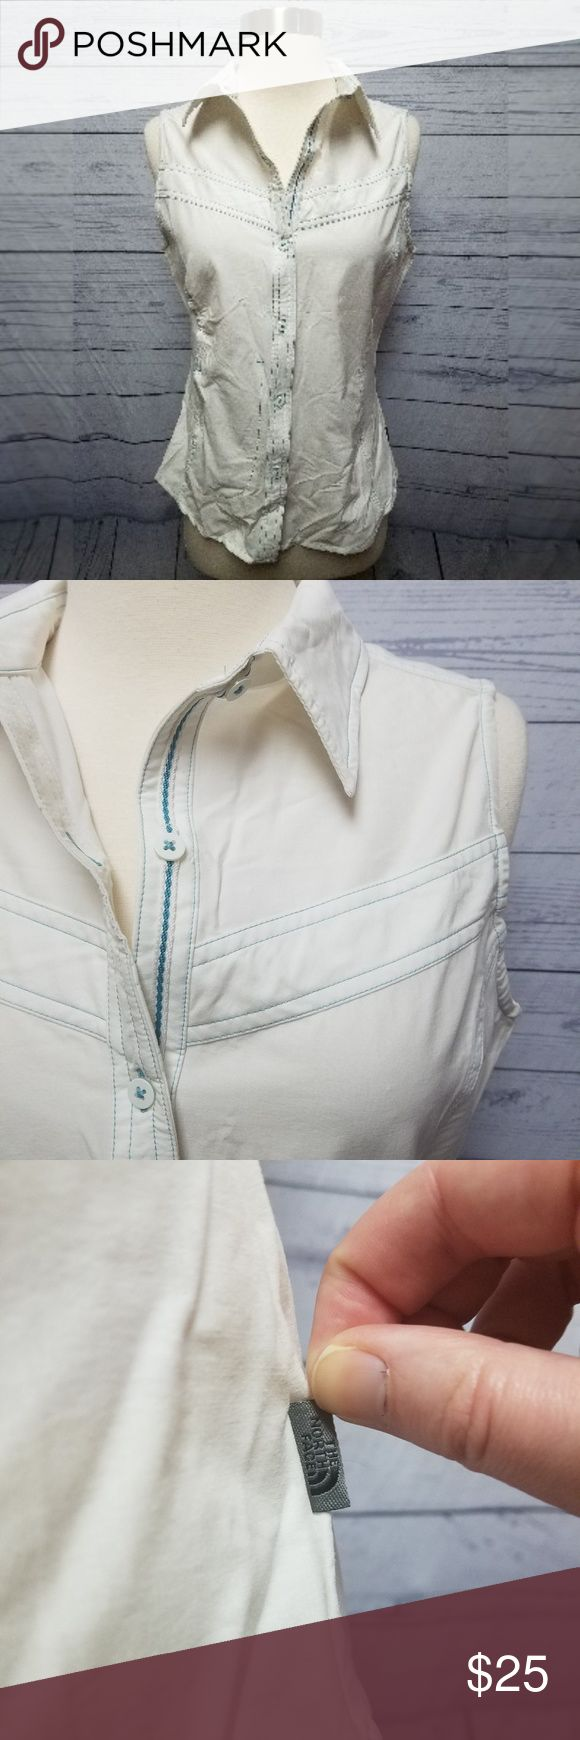 """The North Face white button down vest The North Face white button down sleeveless vest with teal trim. Women's size small. Very lightweight, mesh inside. Bust: 18"""" laid flat Length: 25"""" The North Face Jackets & Coats Vests"""